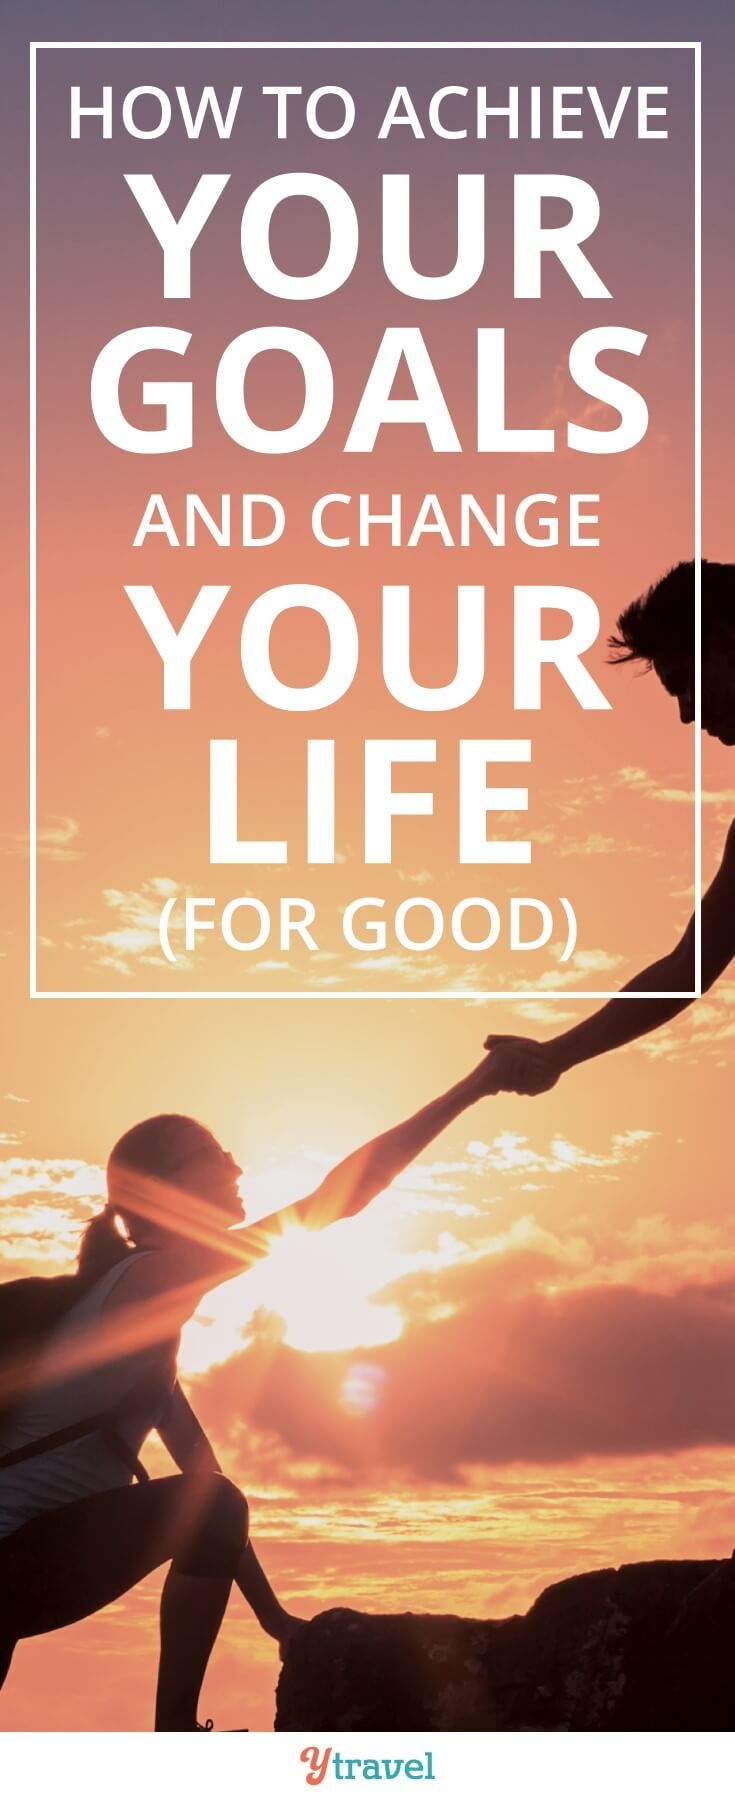 How to achieve your goals and change your life (for good)